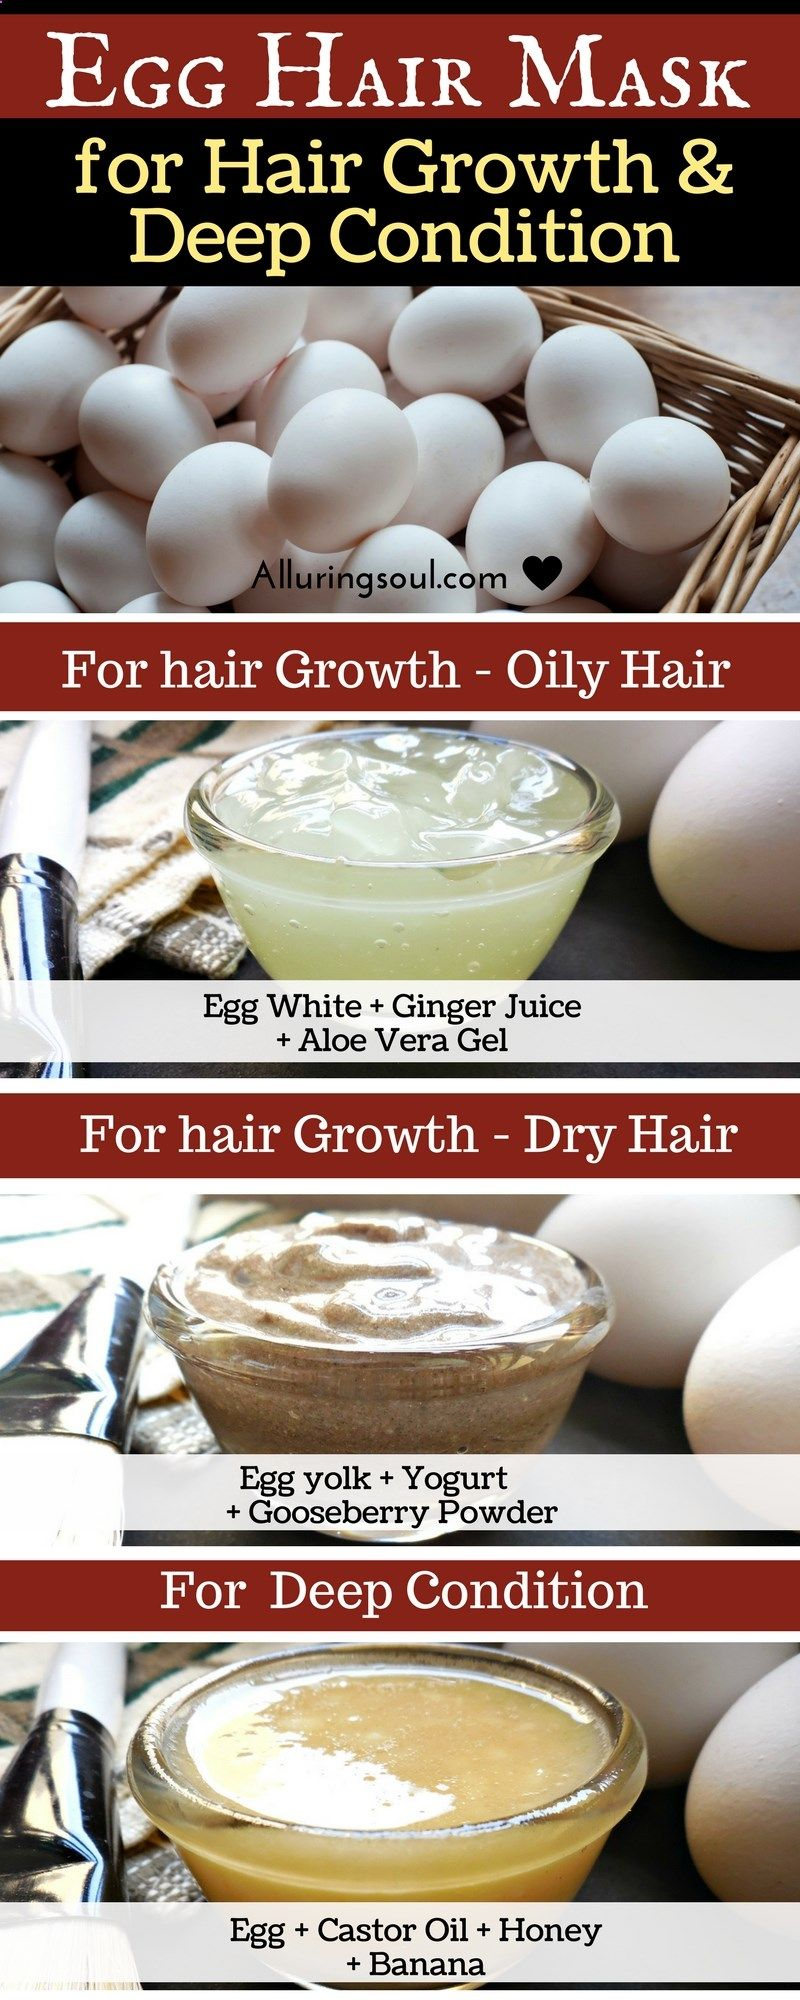 Hair Mask - Egg mask for hair is an effective way to nourish your scalp and also get a healthy hair growth. It conditions hair deeply and make it silky smooth and strong.